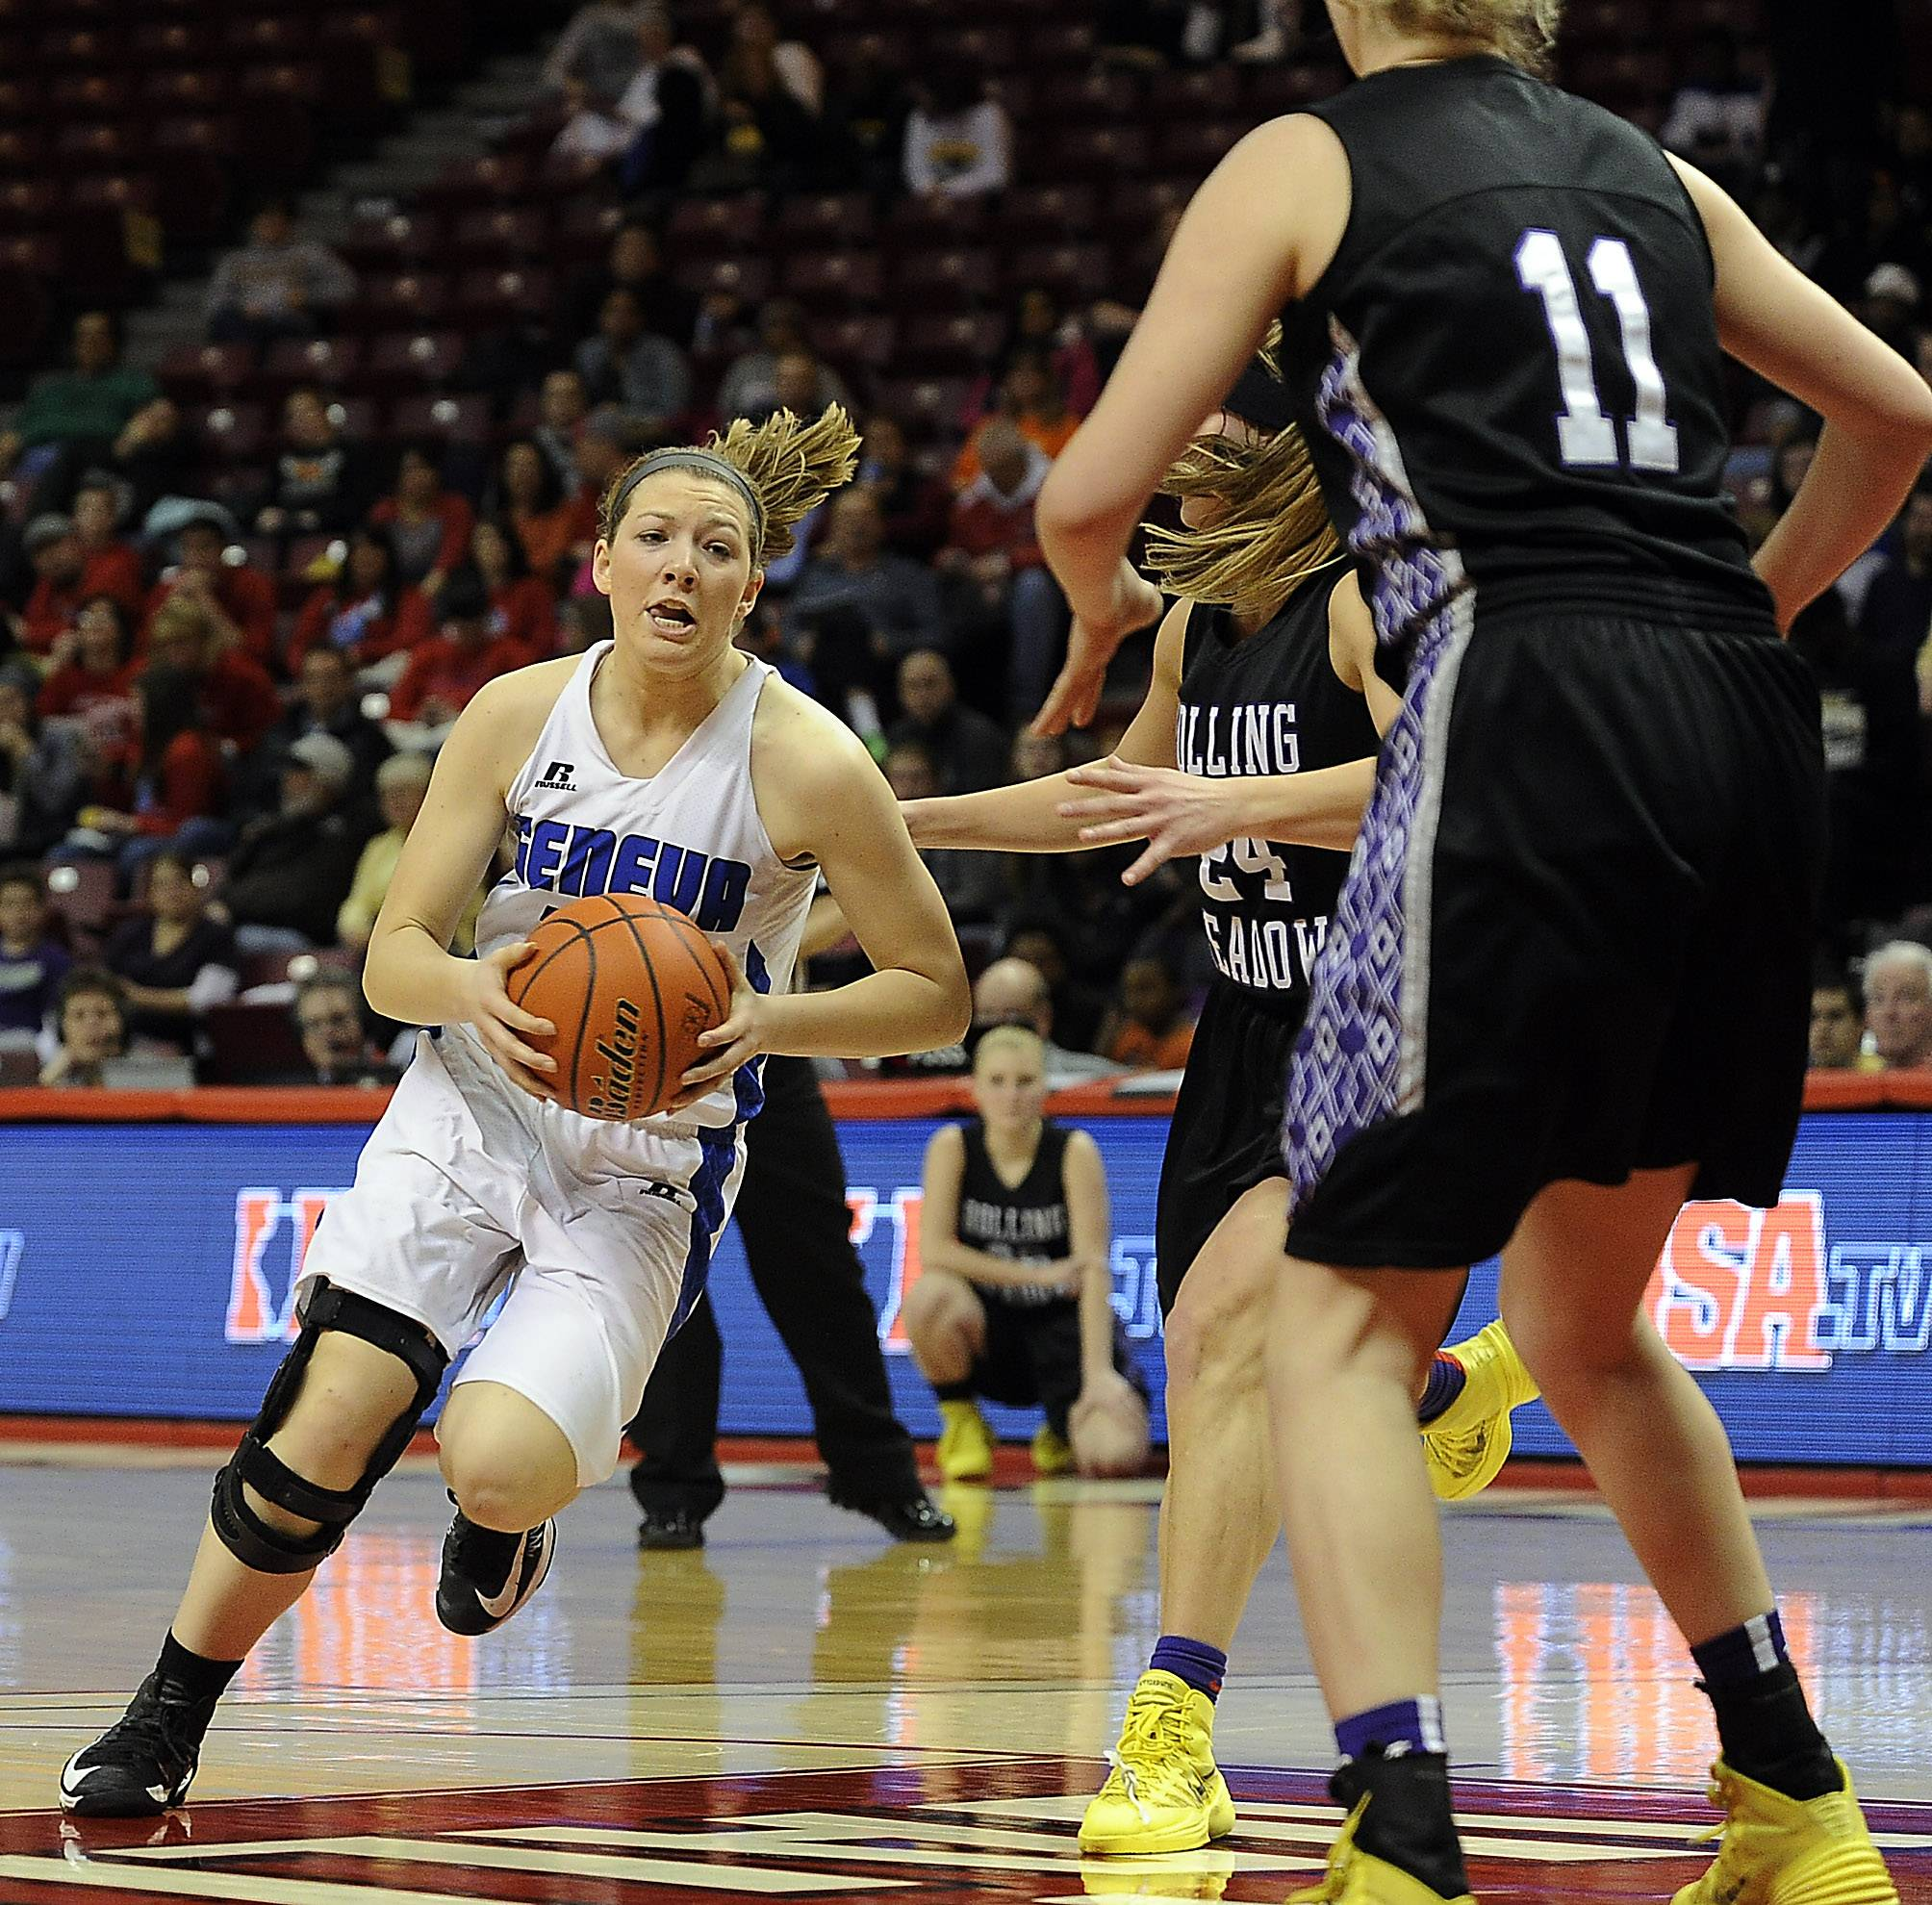 Geneva's Michaela Loebel powers way through Rolling Meadows defenders Alexis Glasgow and Jenny Vliet in the second half of the Class 4A state semifinals in Normal on Friday.